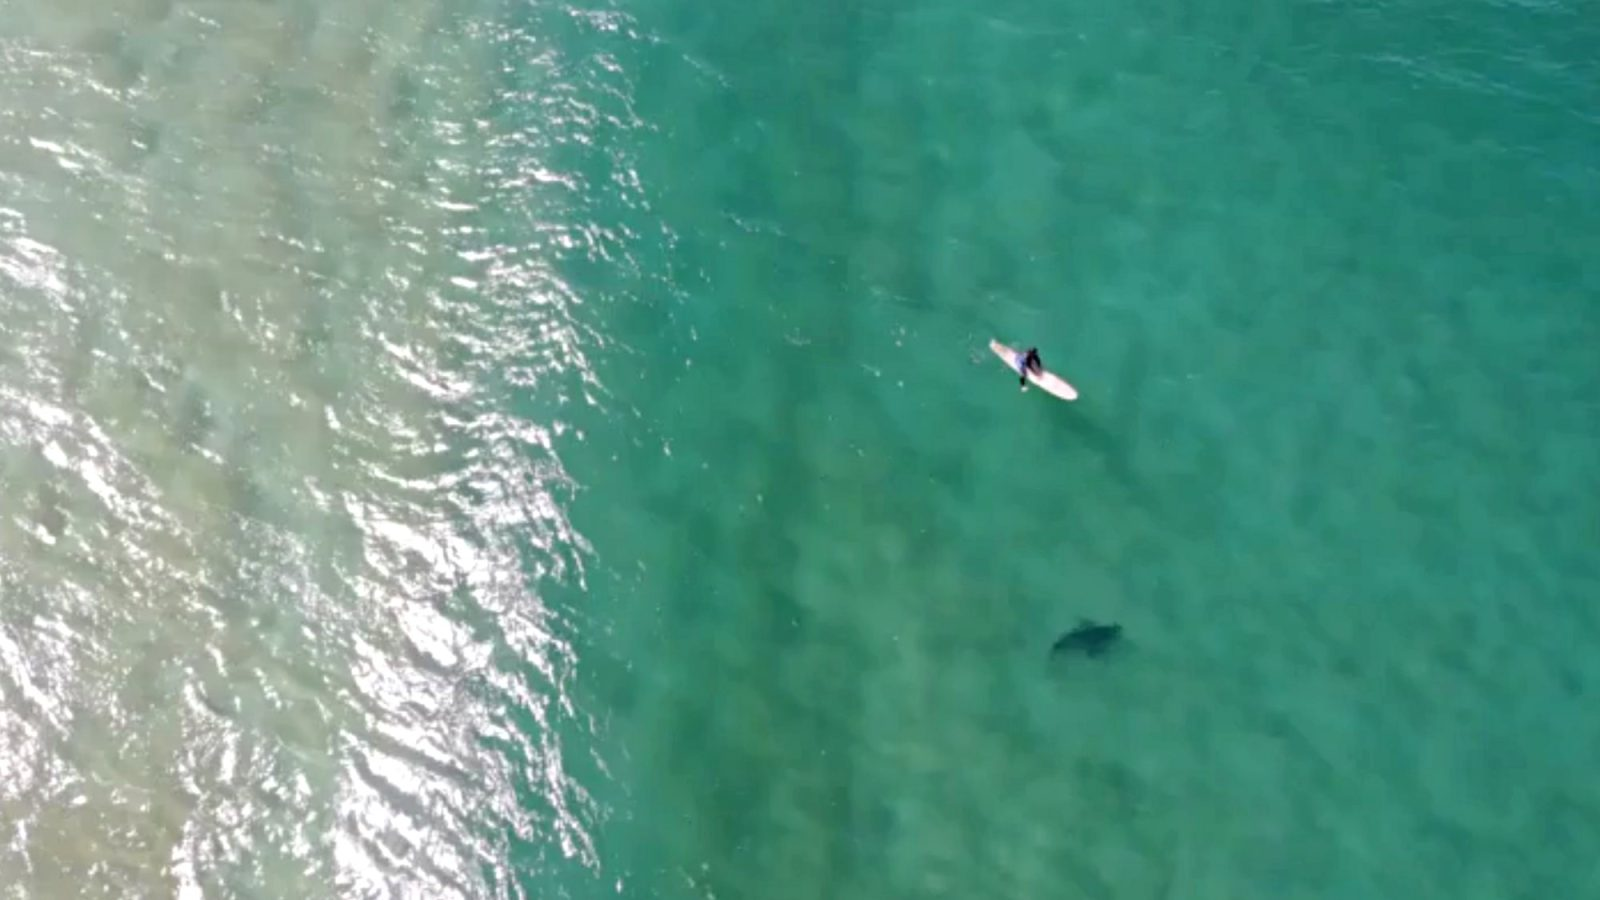 Drone-pilot-uses-Mavic-2-Enterprise-to-warn-surfer-of-approaching-shark.jpg